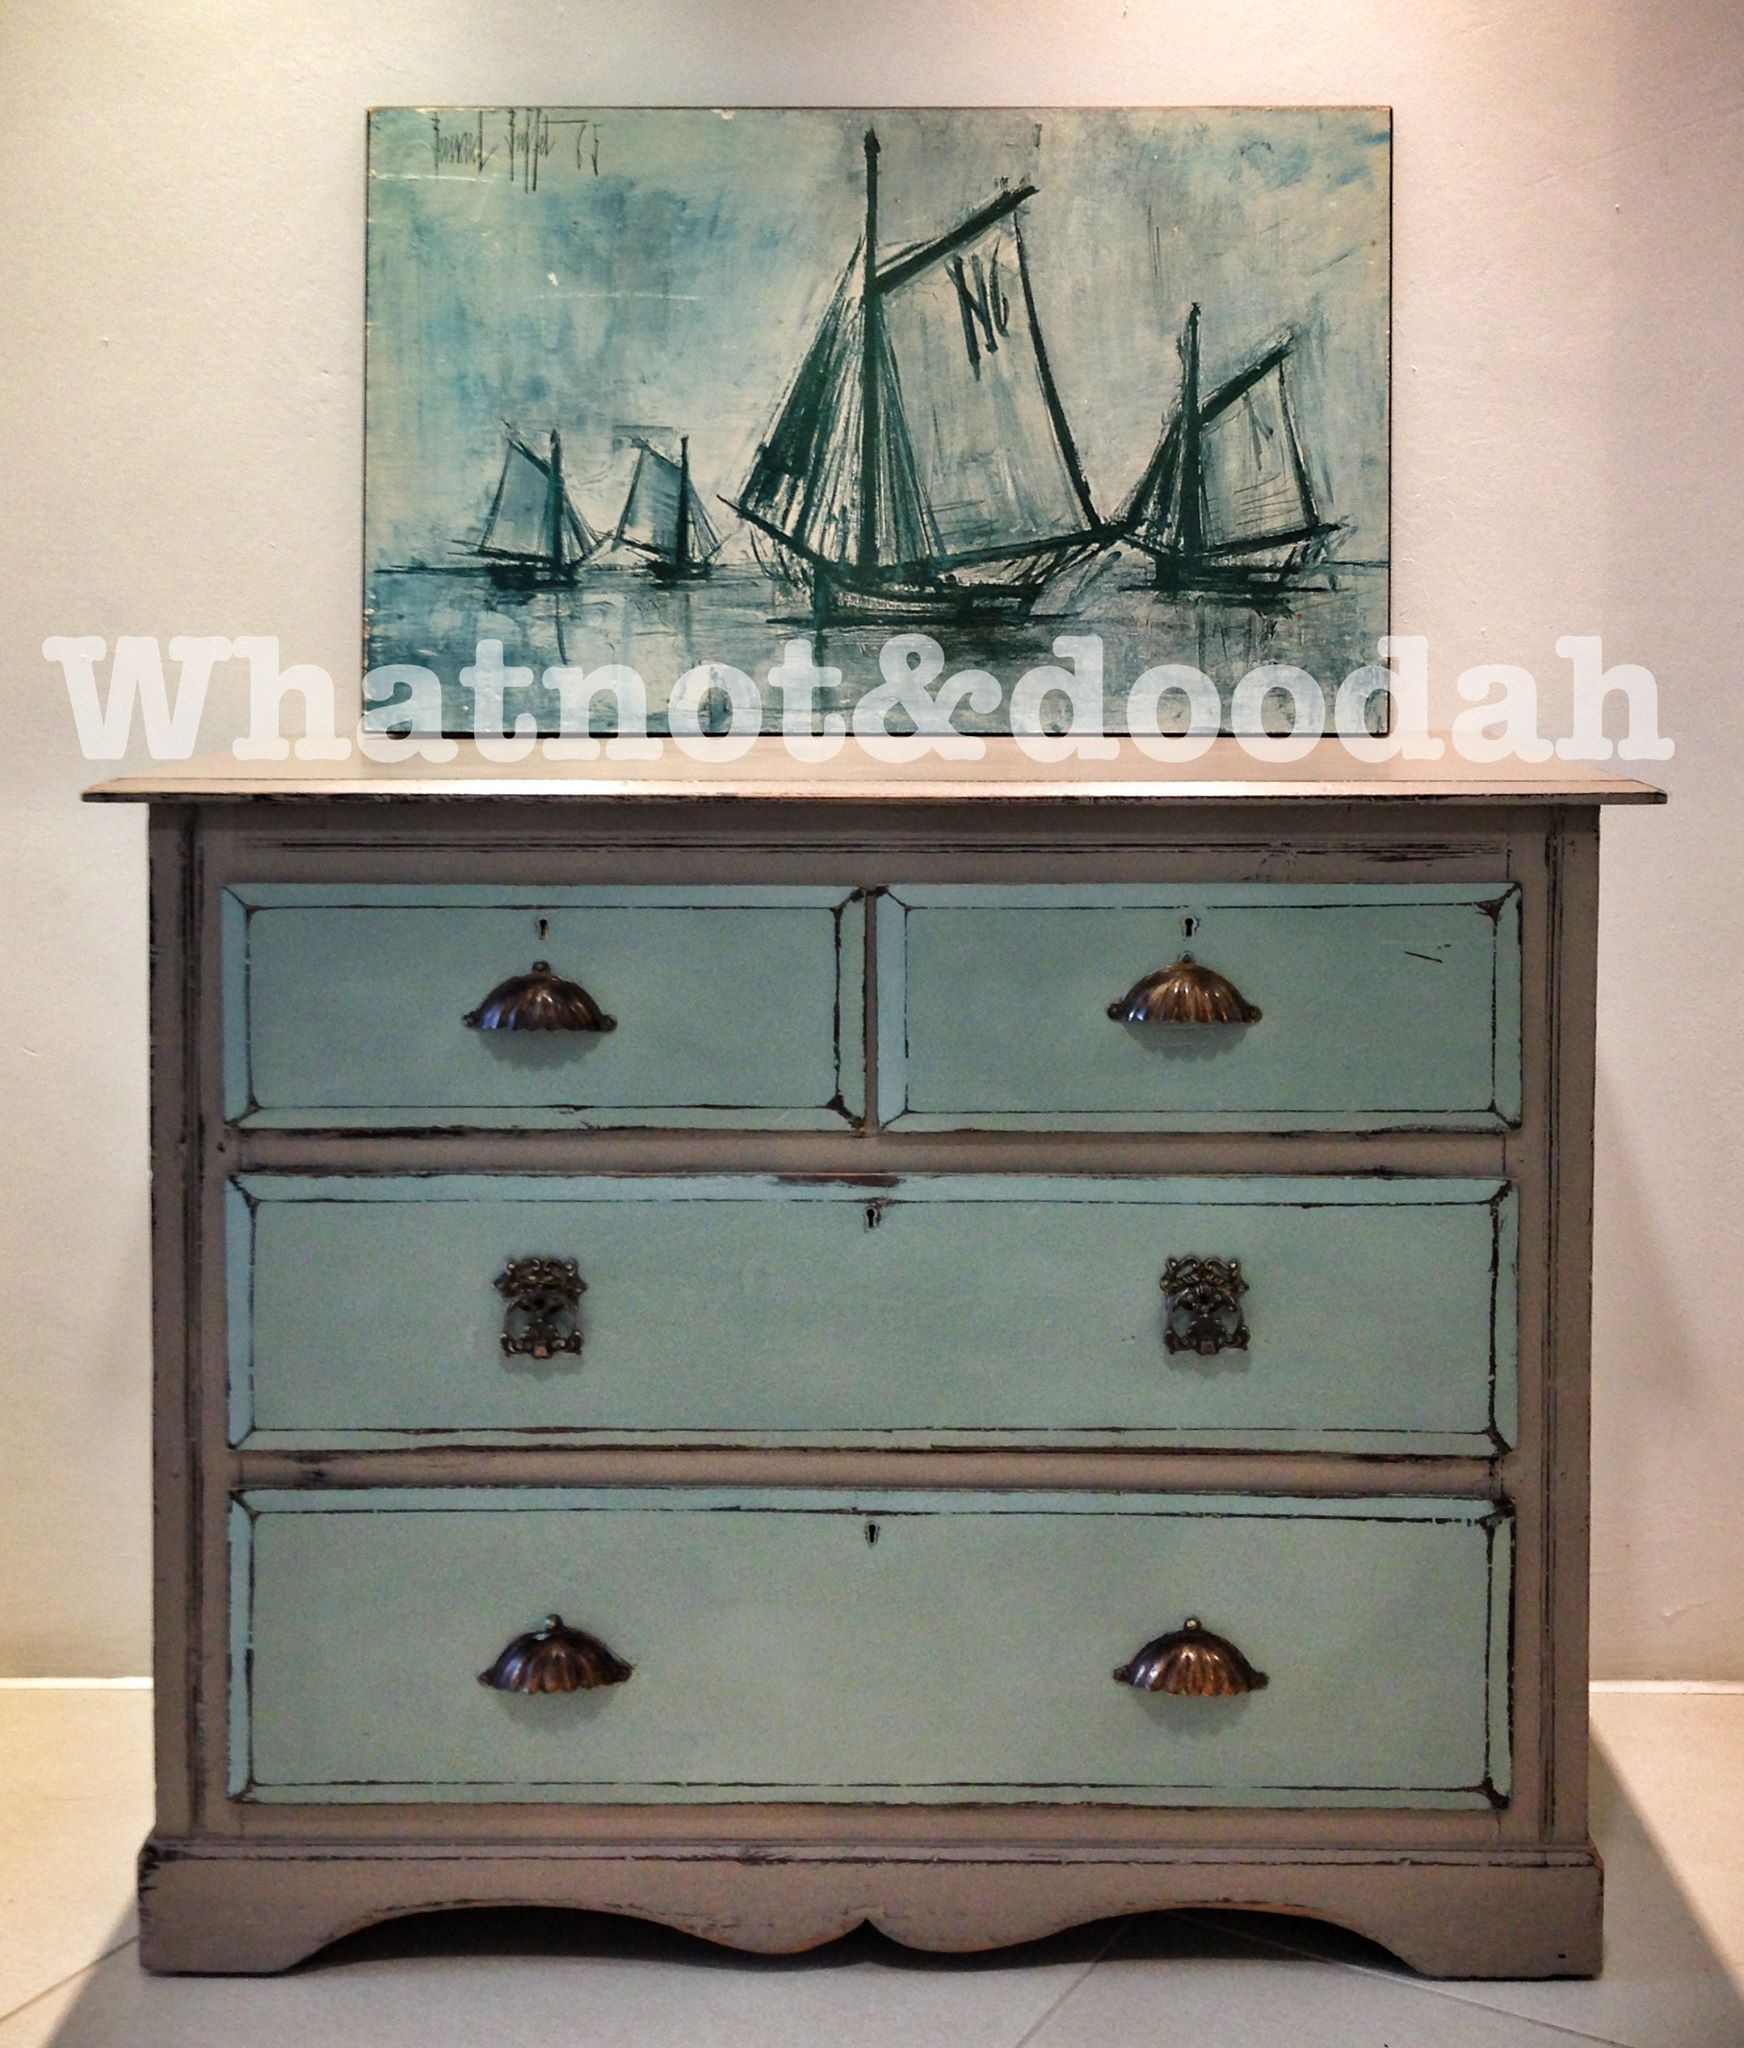 Pine Bedroom Sets Duck Egg Colour Bedroom Top 10 Bedroom Paint Colors Guest Bedroom Decorating Ideas: Duck Egg Blue And French Linen. Love This Color Combo